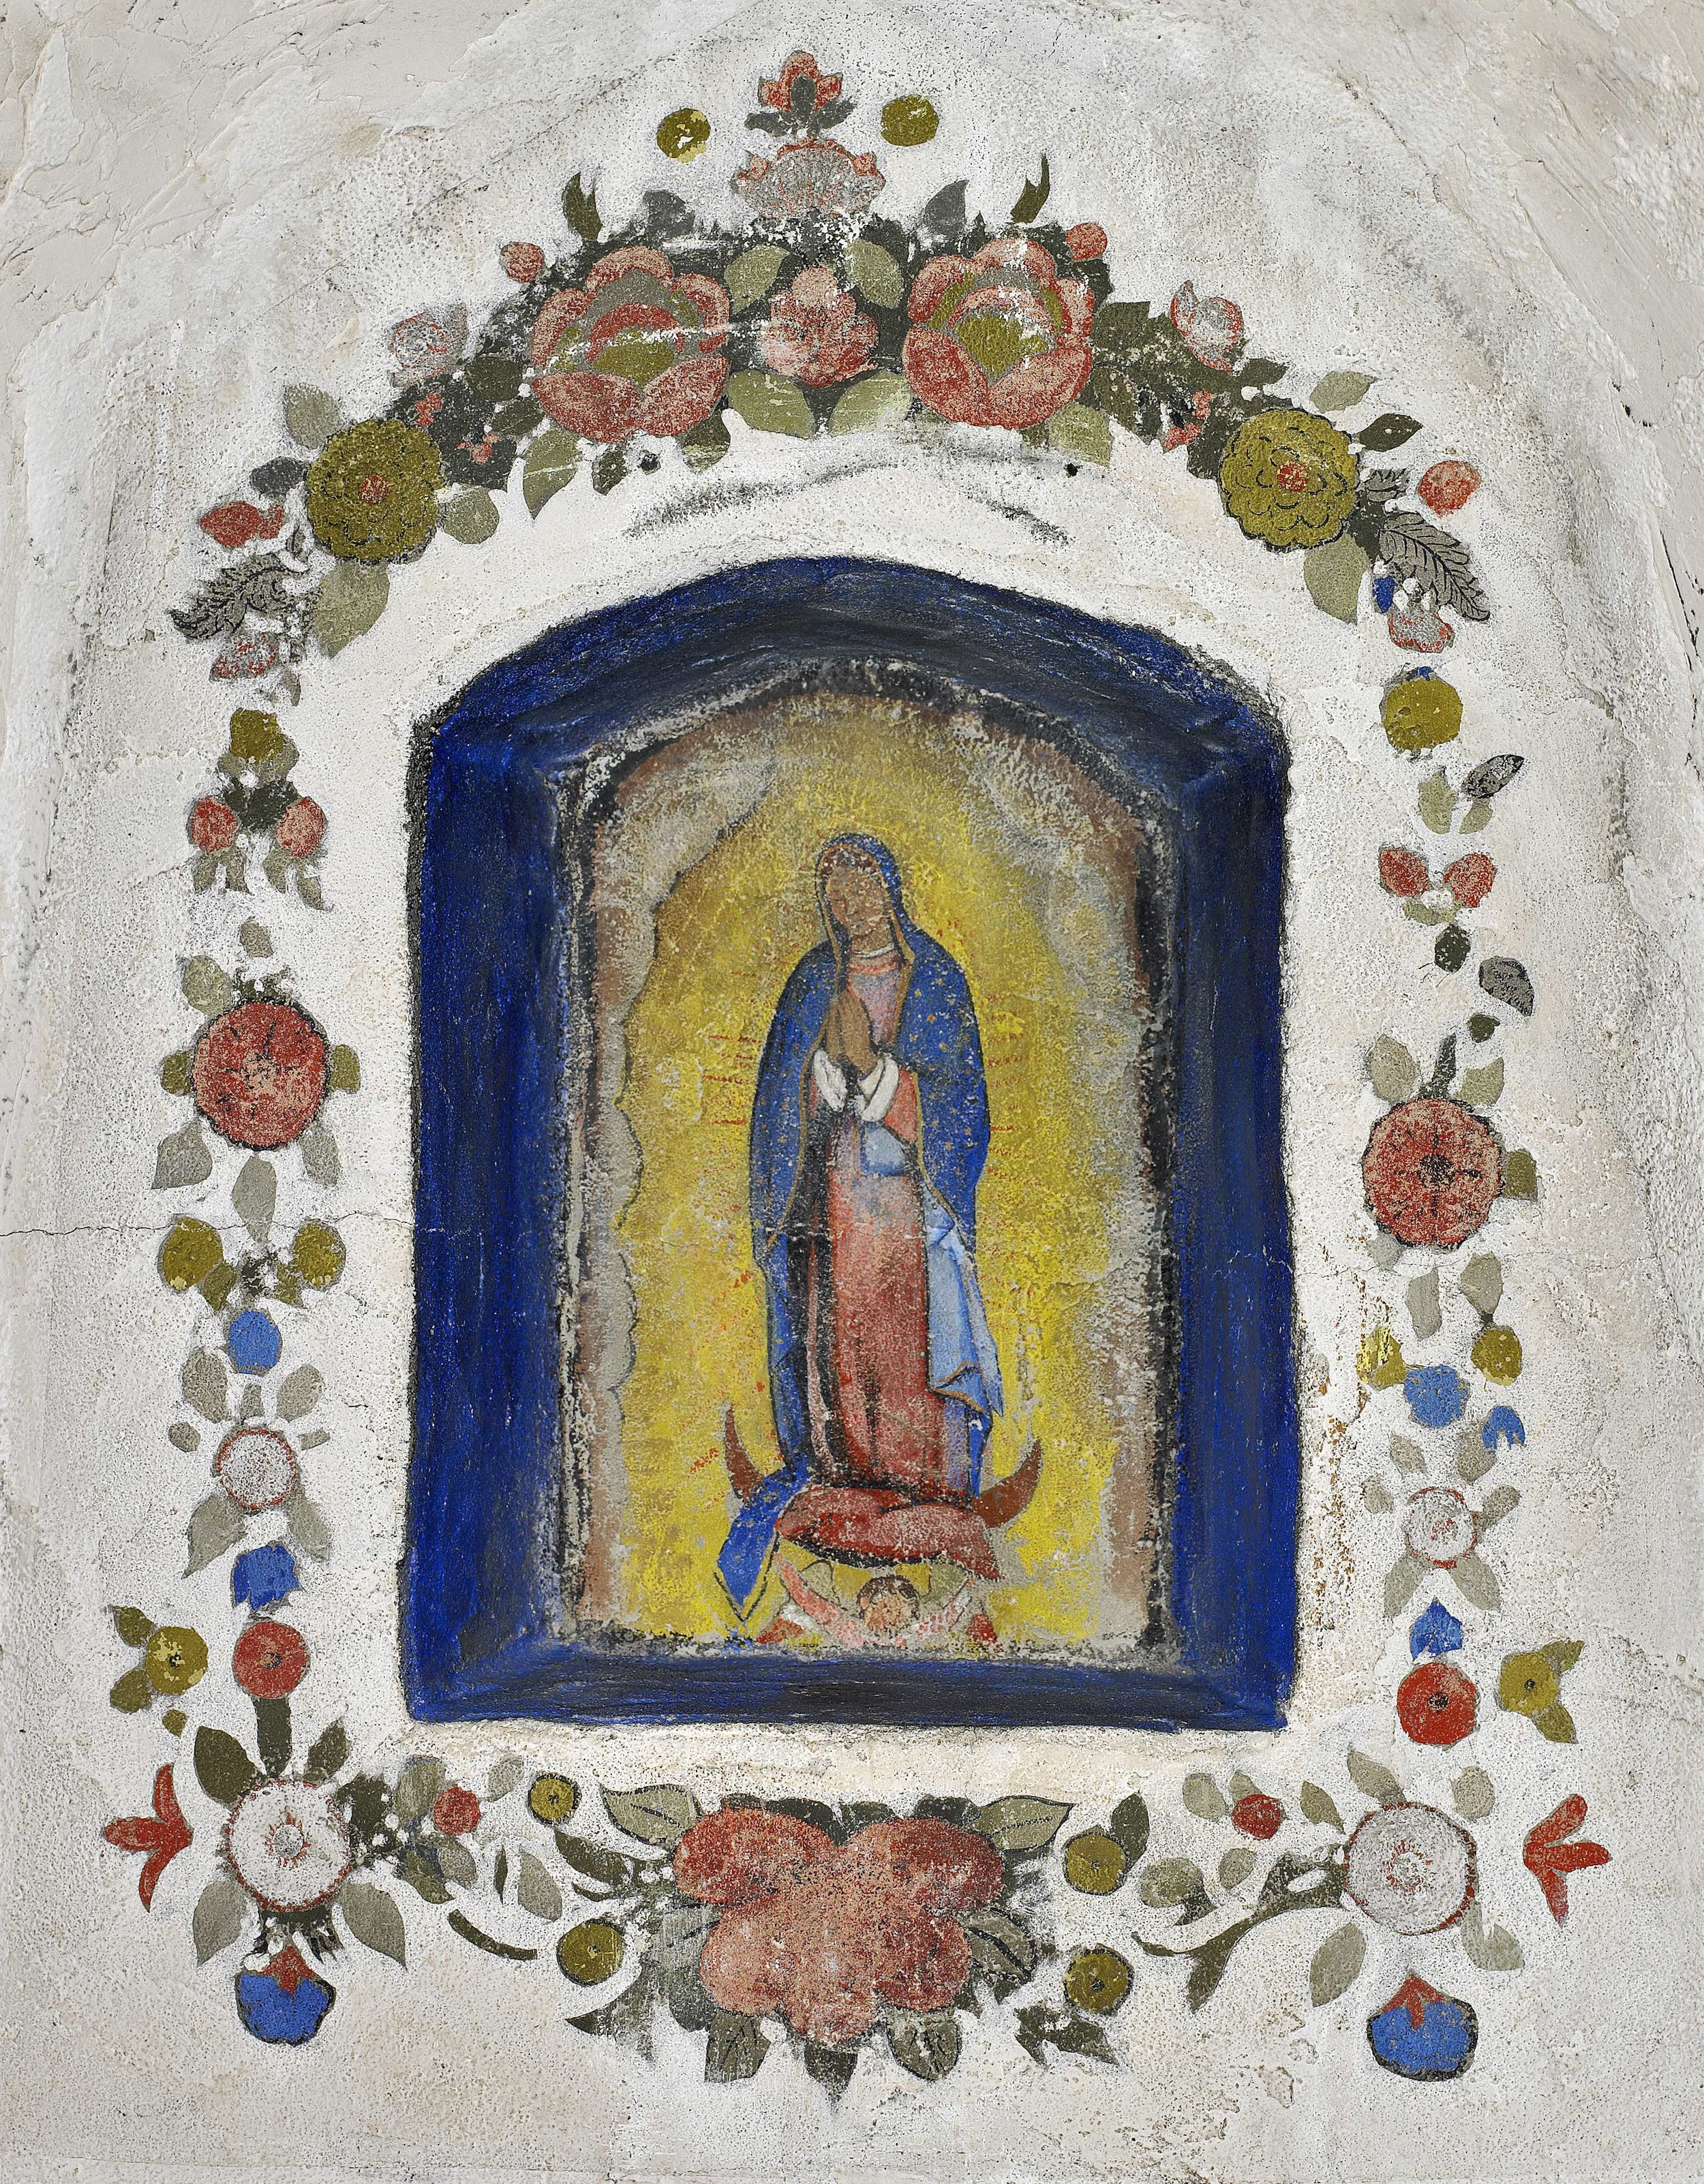 La Virgen de Guadalupe / The Virgin of Guadalupe  ca. 1934 fresco 25 x 19 inches; 63.5 x 48.3 centímetros The Victor Valley Museum and Art Gallery